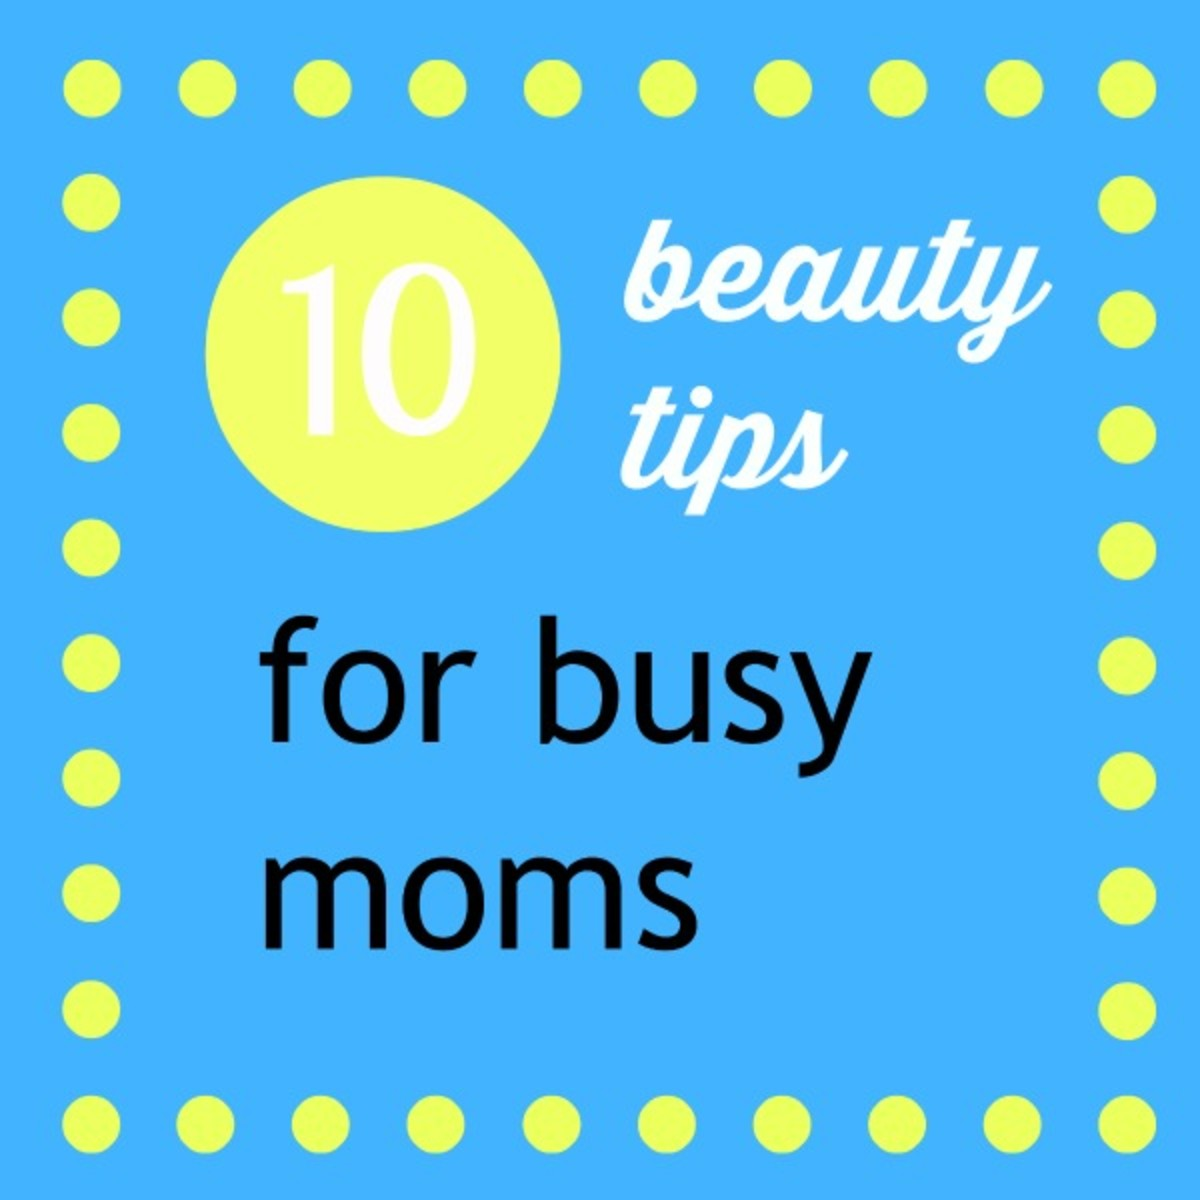 10 beauty tips for busy moms